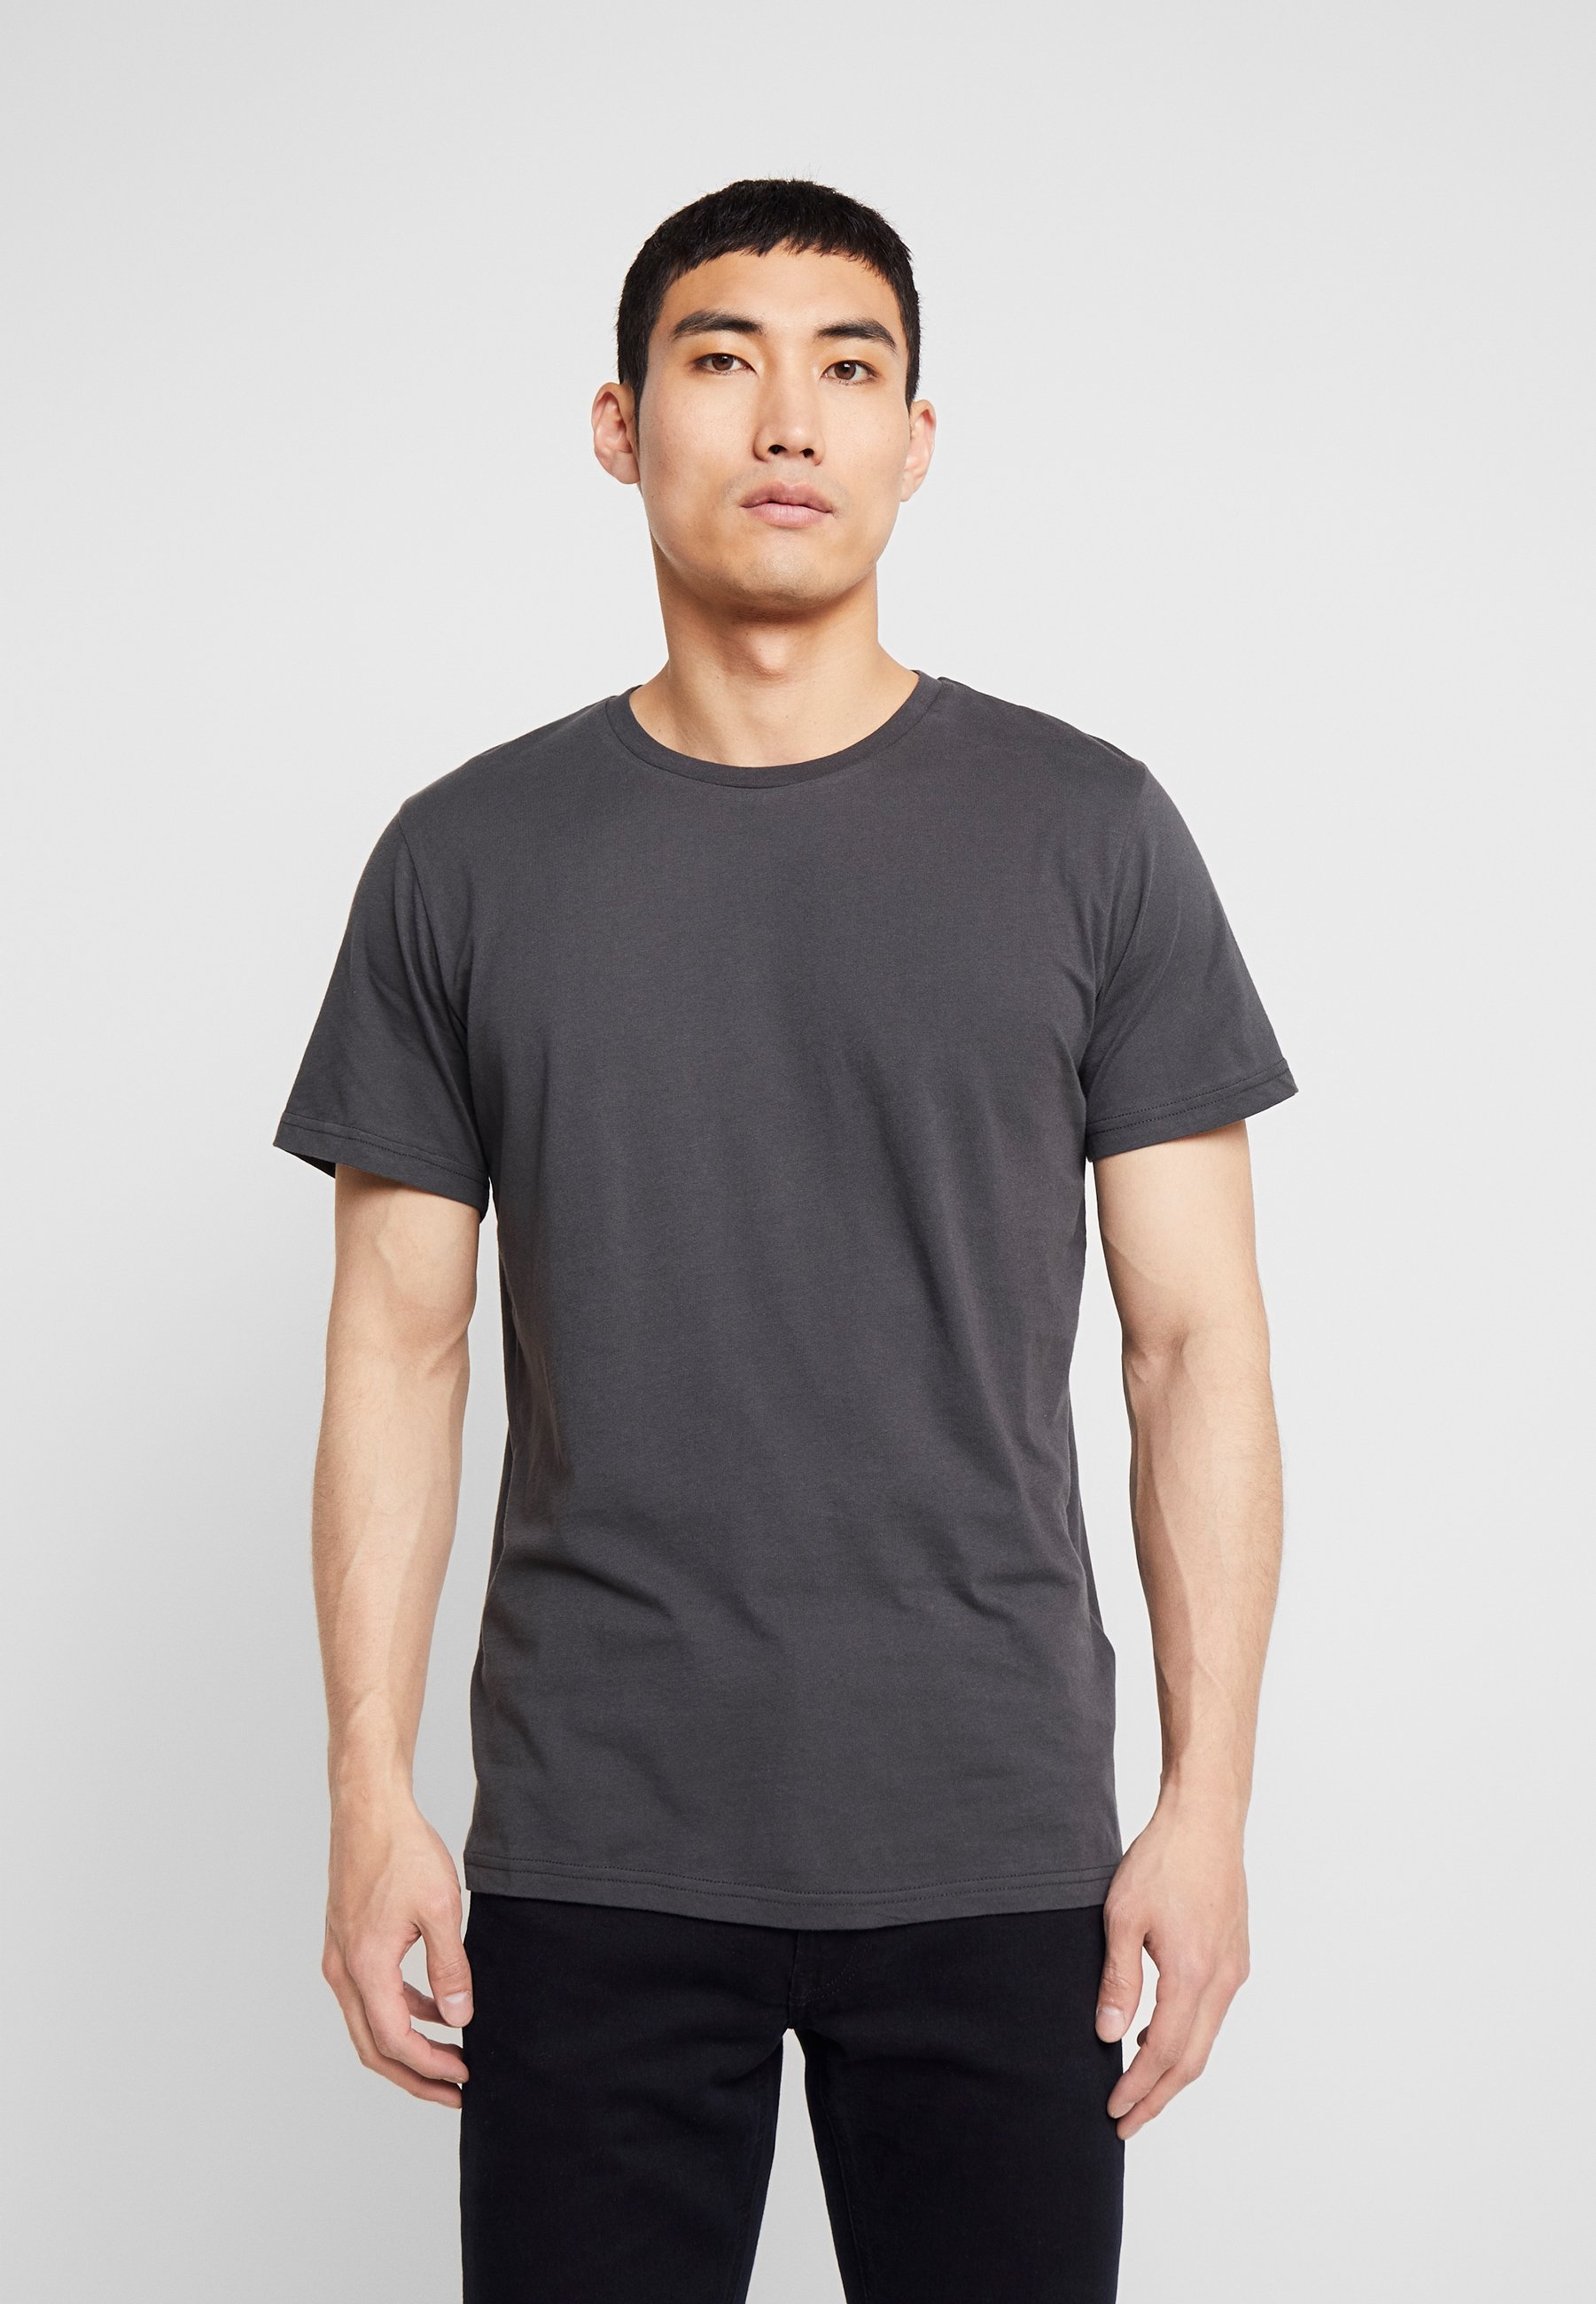 TeeT The Makers Anthracite Basique Garment shirt By If6m7yvbYg